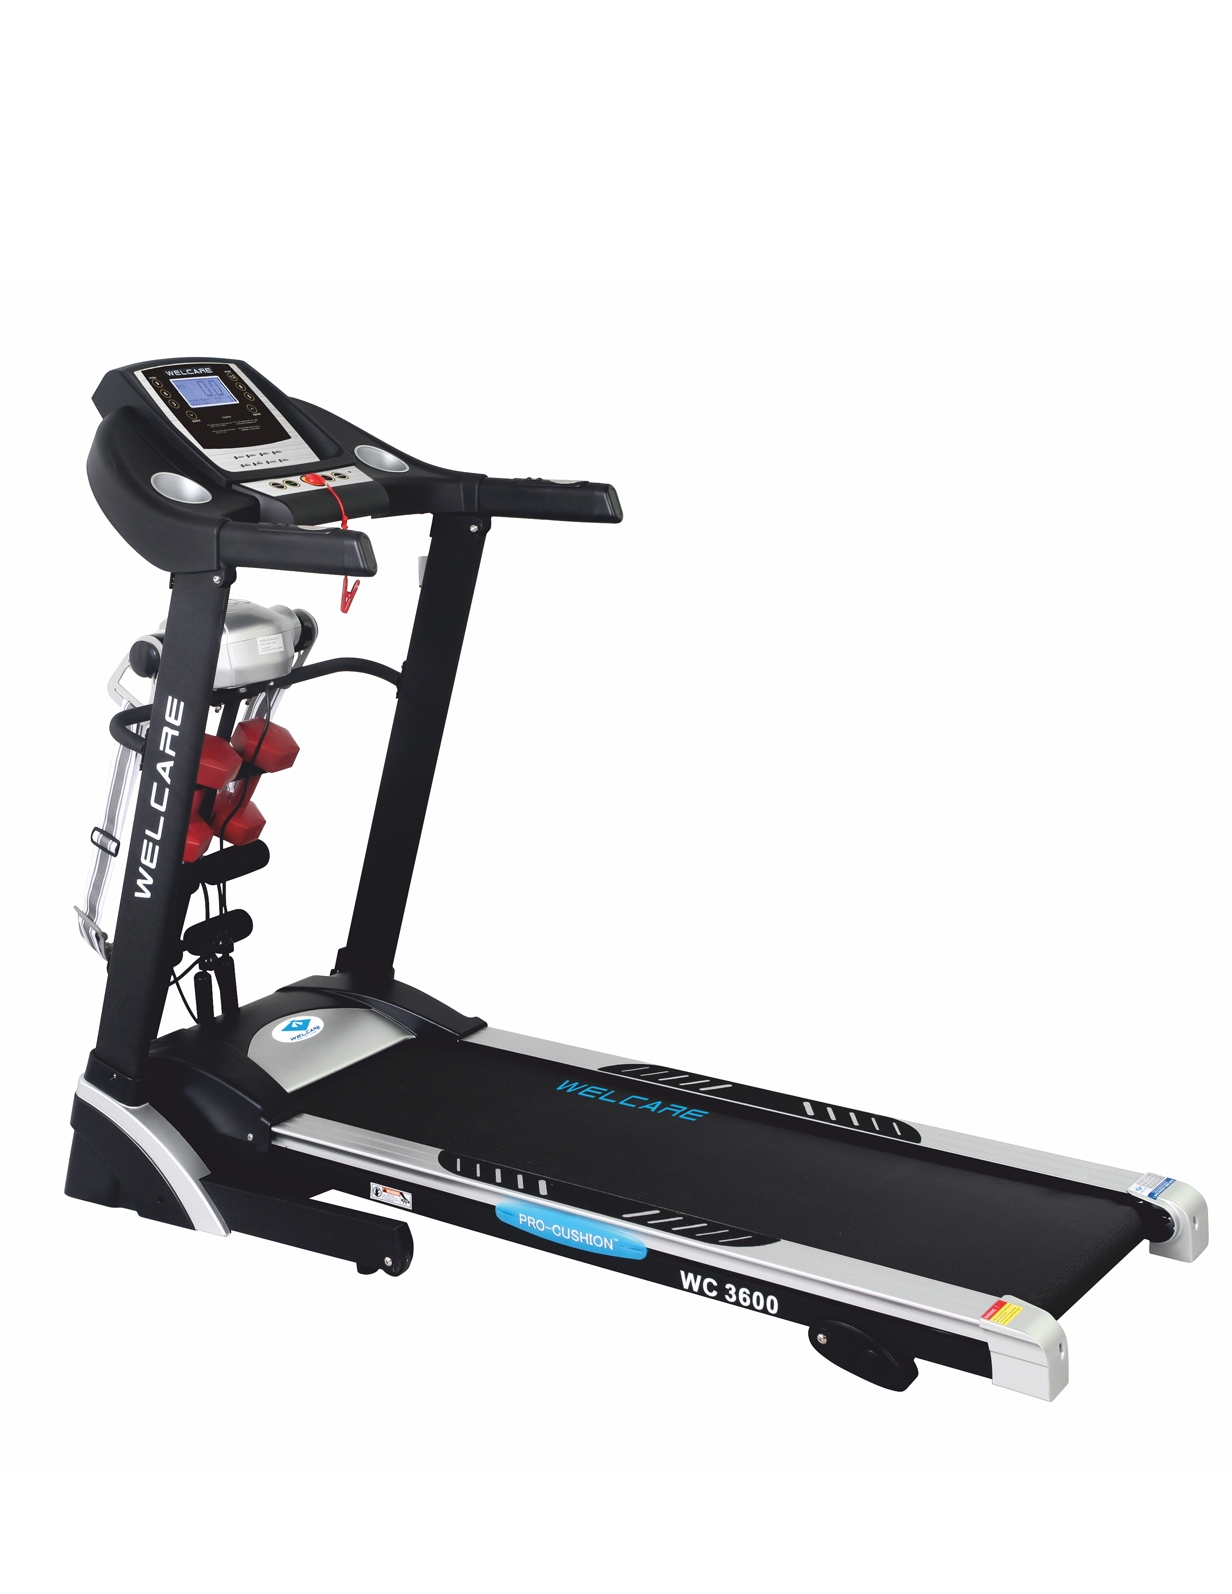 WC 3600 DC MOTORIZED  TREADMILL